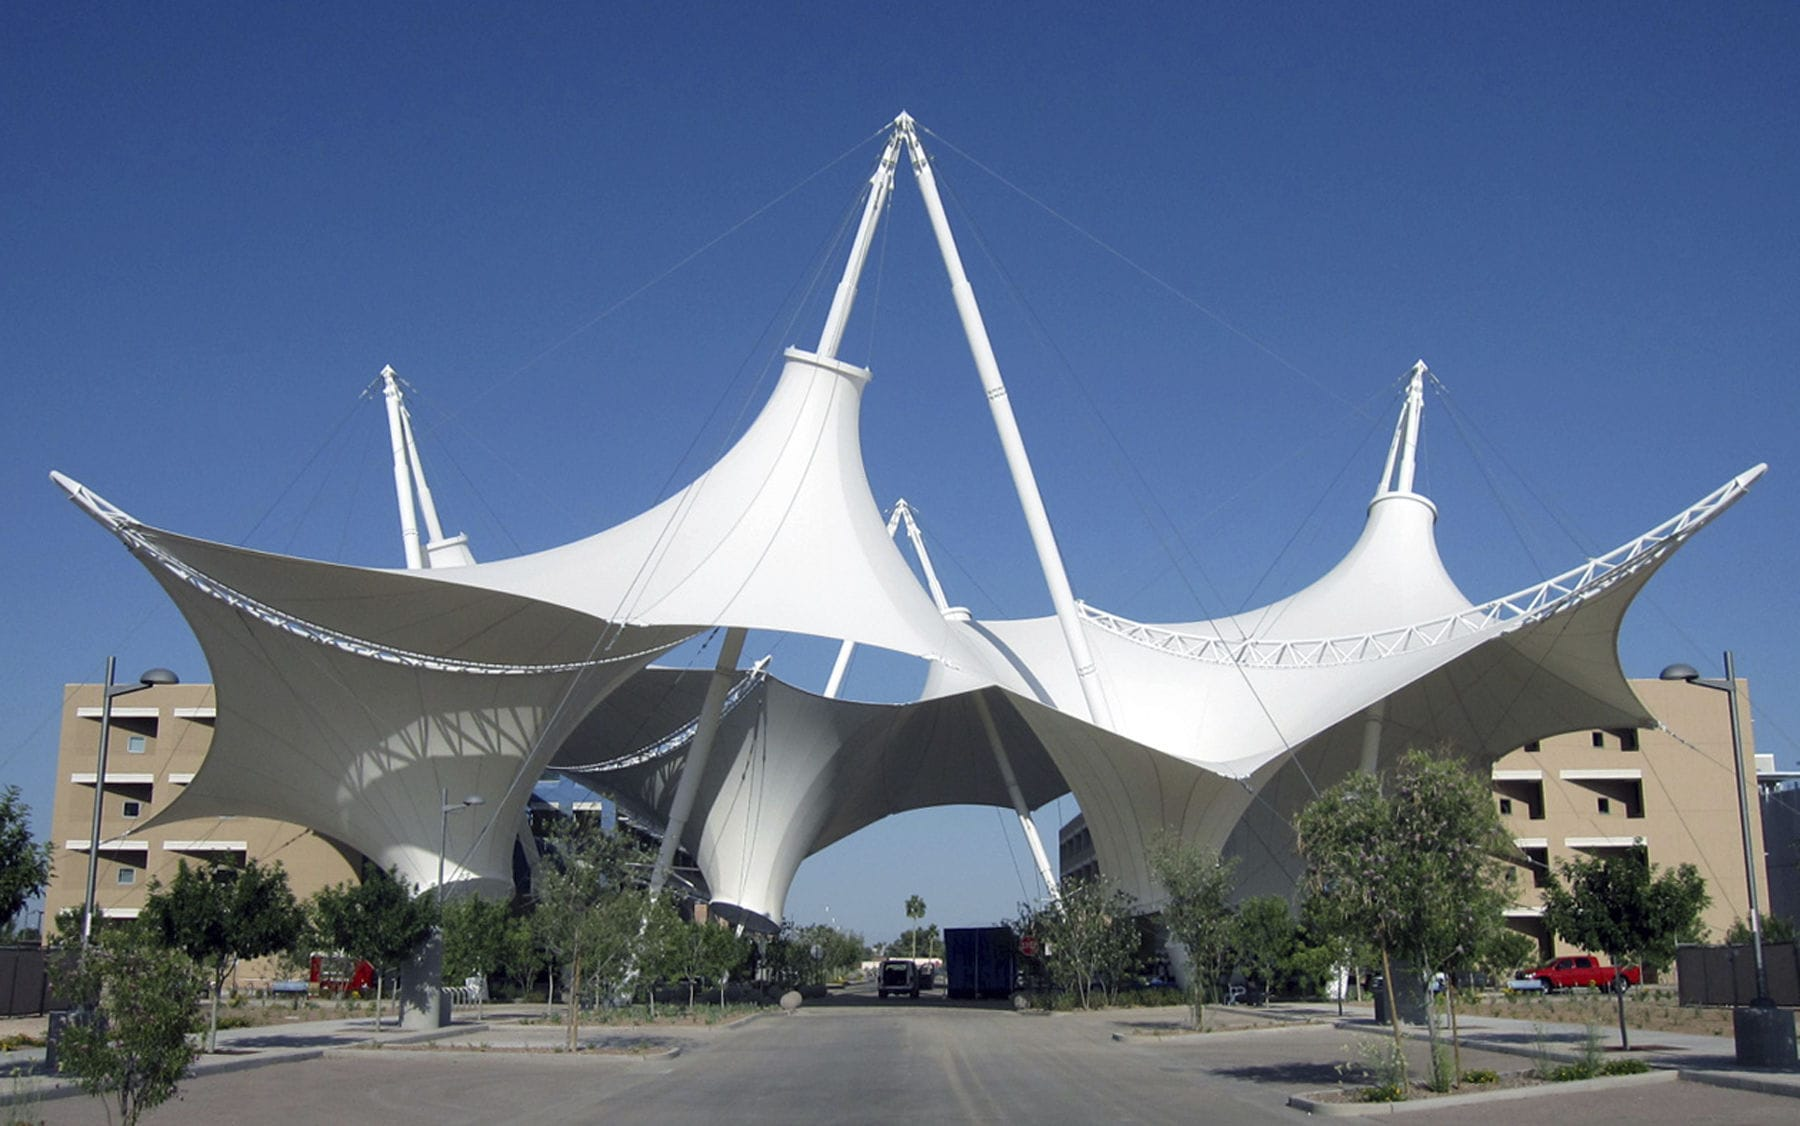 Cable-and-membrane tensile structure / canopy / for shelters / for ceilings - MAST-SUPPORTED TENSILE STRUCTURES & Cable-and-membrane tensile structure / canopy / for shelters / for ... memphite.com